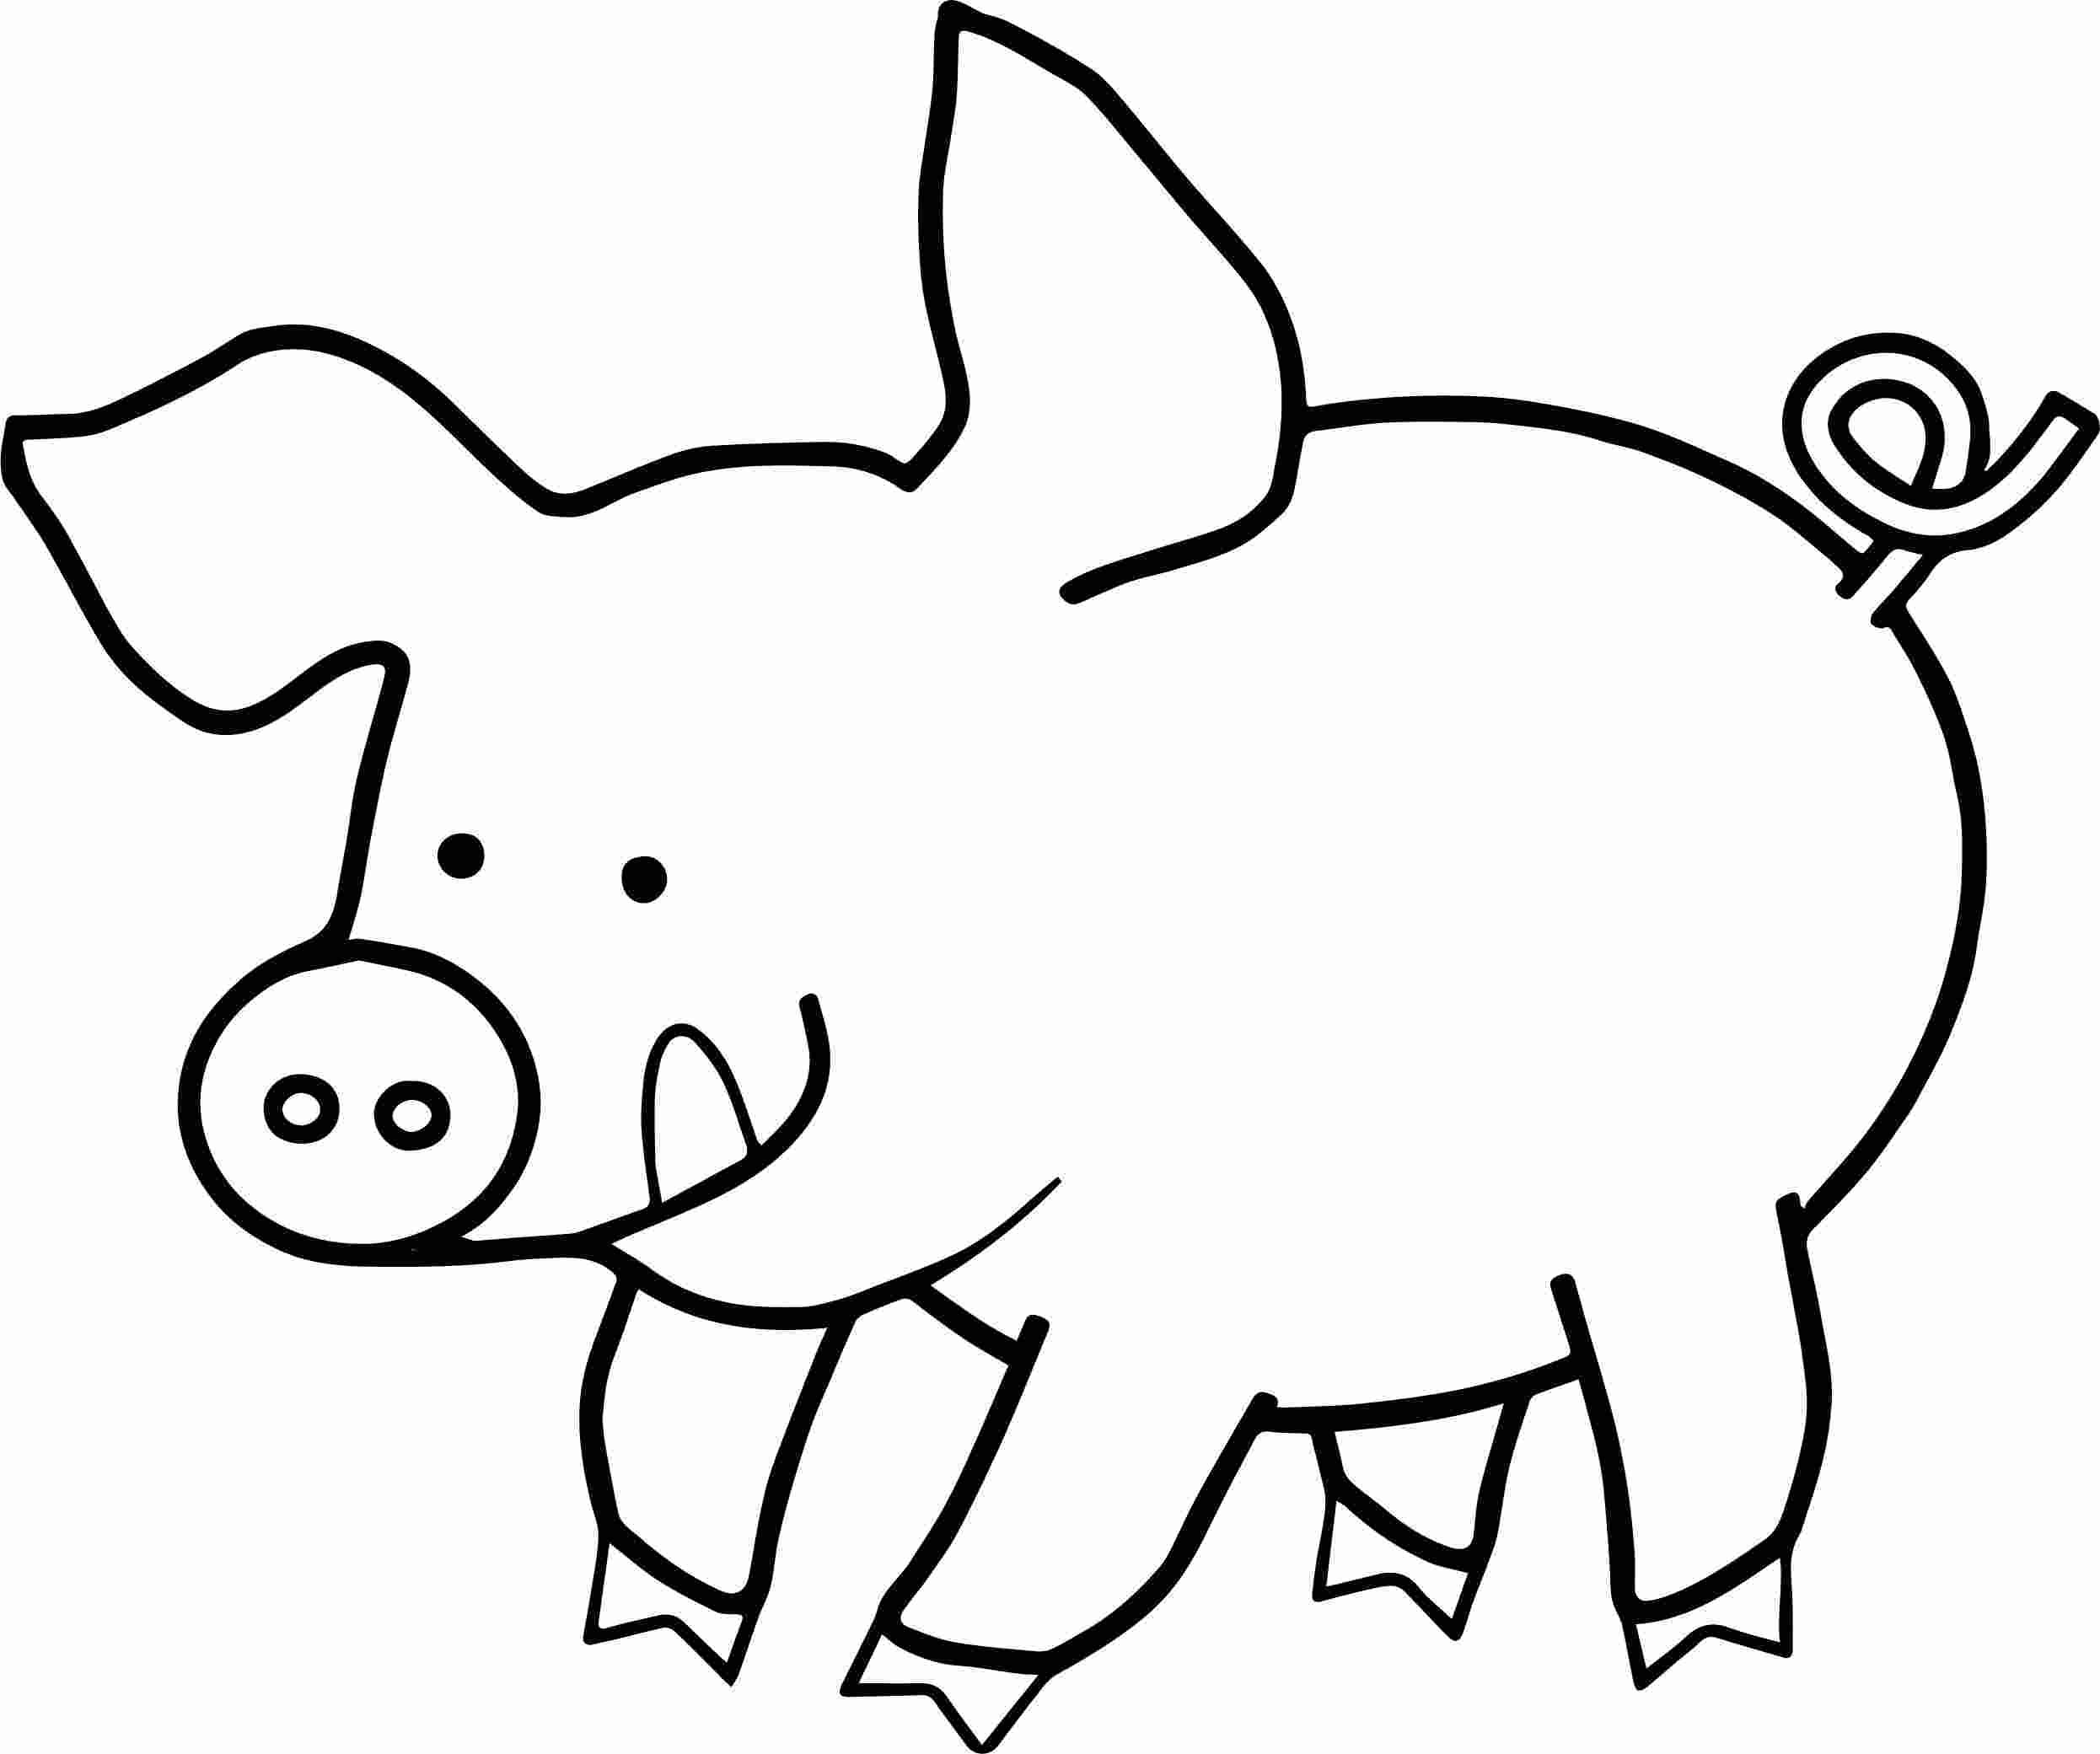 Hog Coloring Pages Peppa Pig Coloring Pages Animal Coloring Pages Snake Coloring Pages